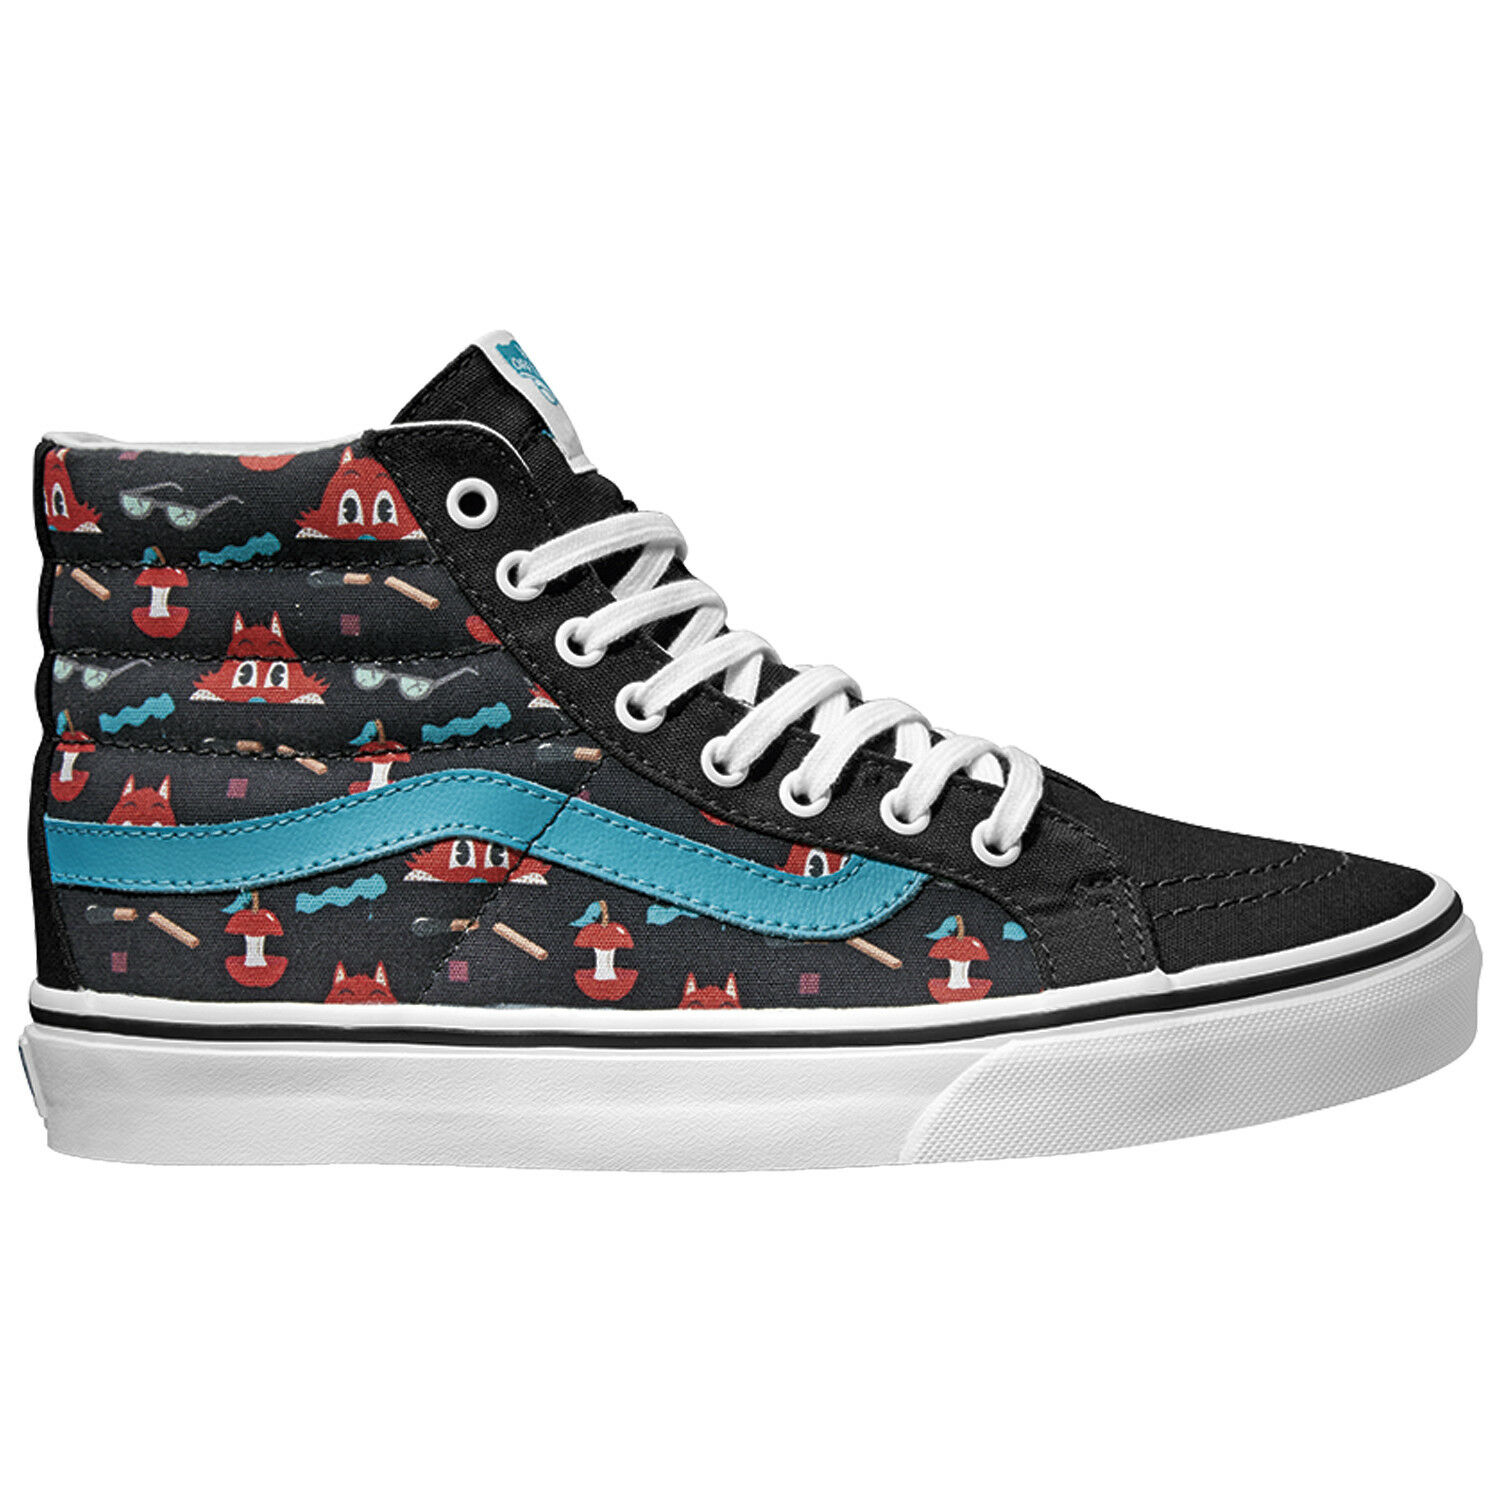 VANS Sk8 Hi Slim (Dabs Myla) Multi/Black Skate Shoes WOMEN'S 9